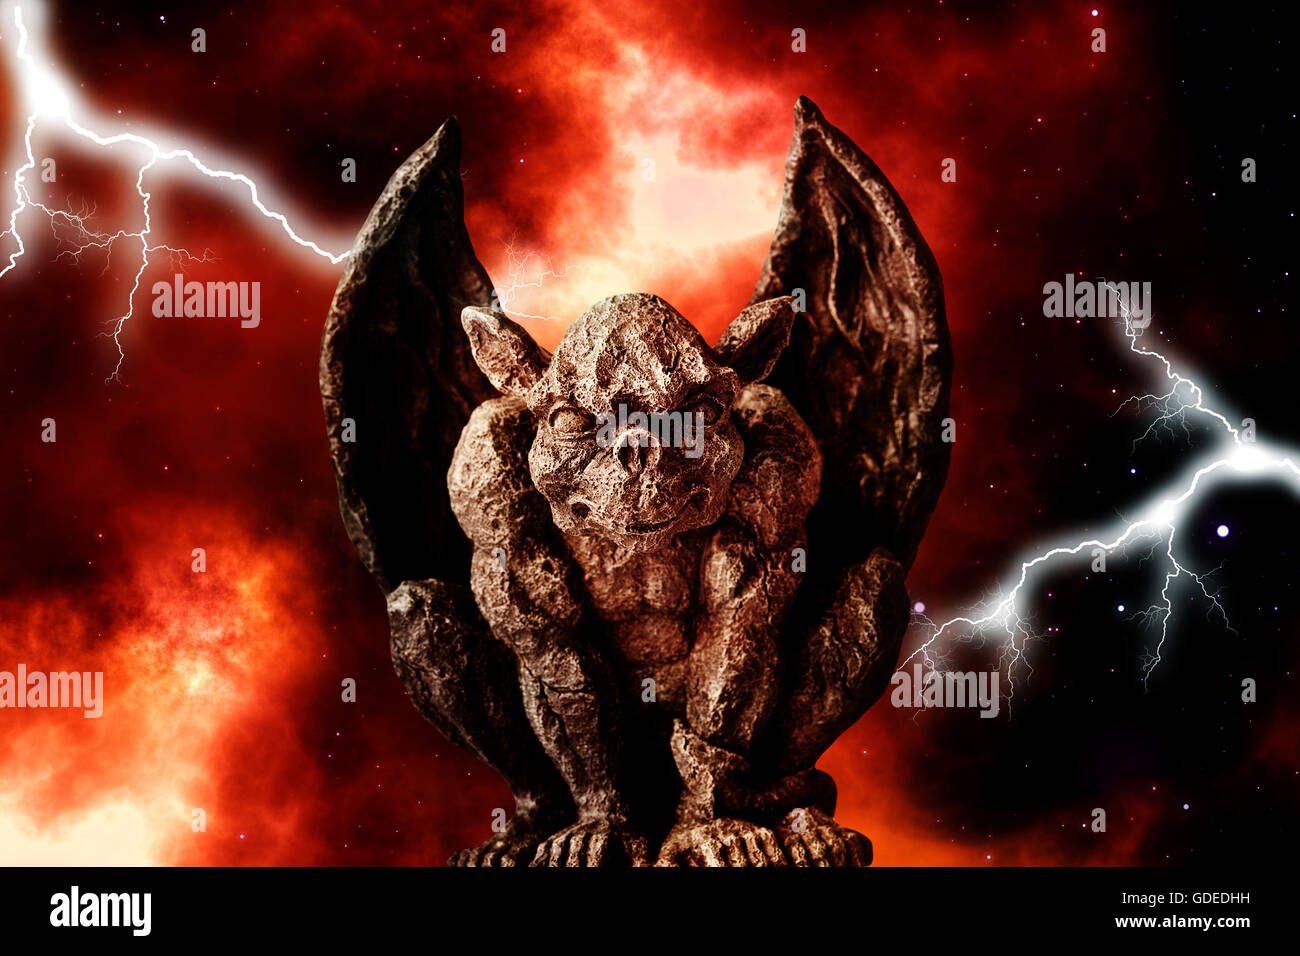 gargoyle statue against a dramatic sky - Stock Image